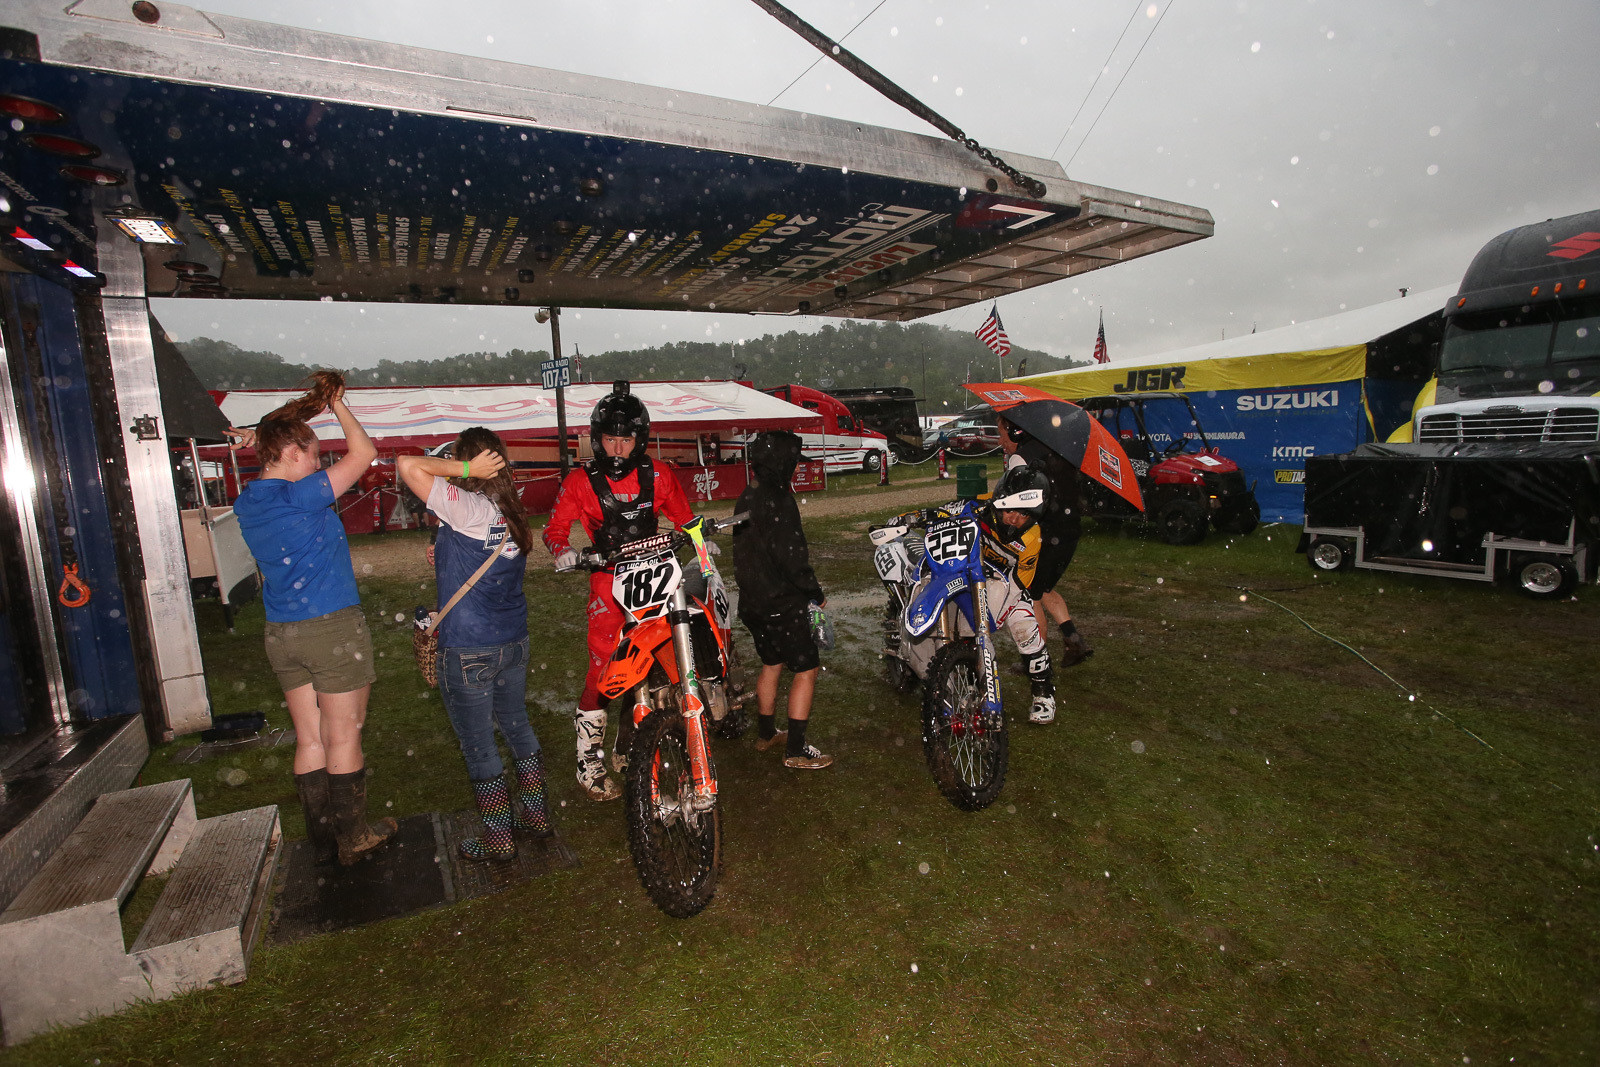 The 450 B riders got a bit of a shaft, since the rain started coming down hard in the middle of the shortened 450 A practice session. Unfortunately, there wasn't much to be done about it.